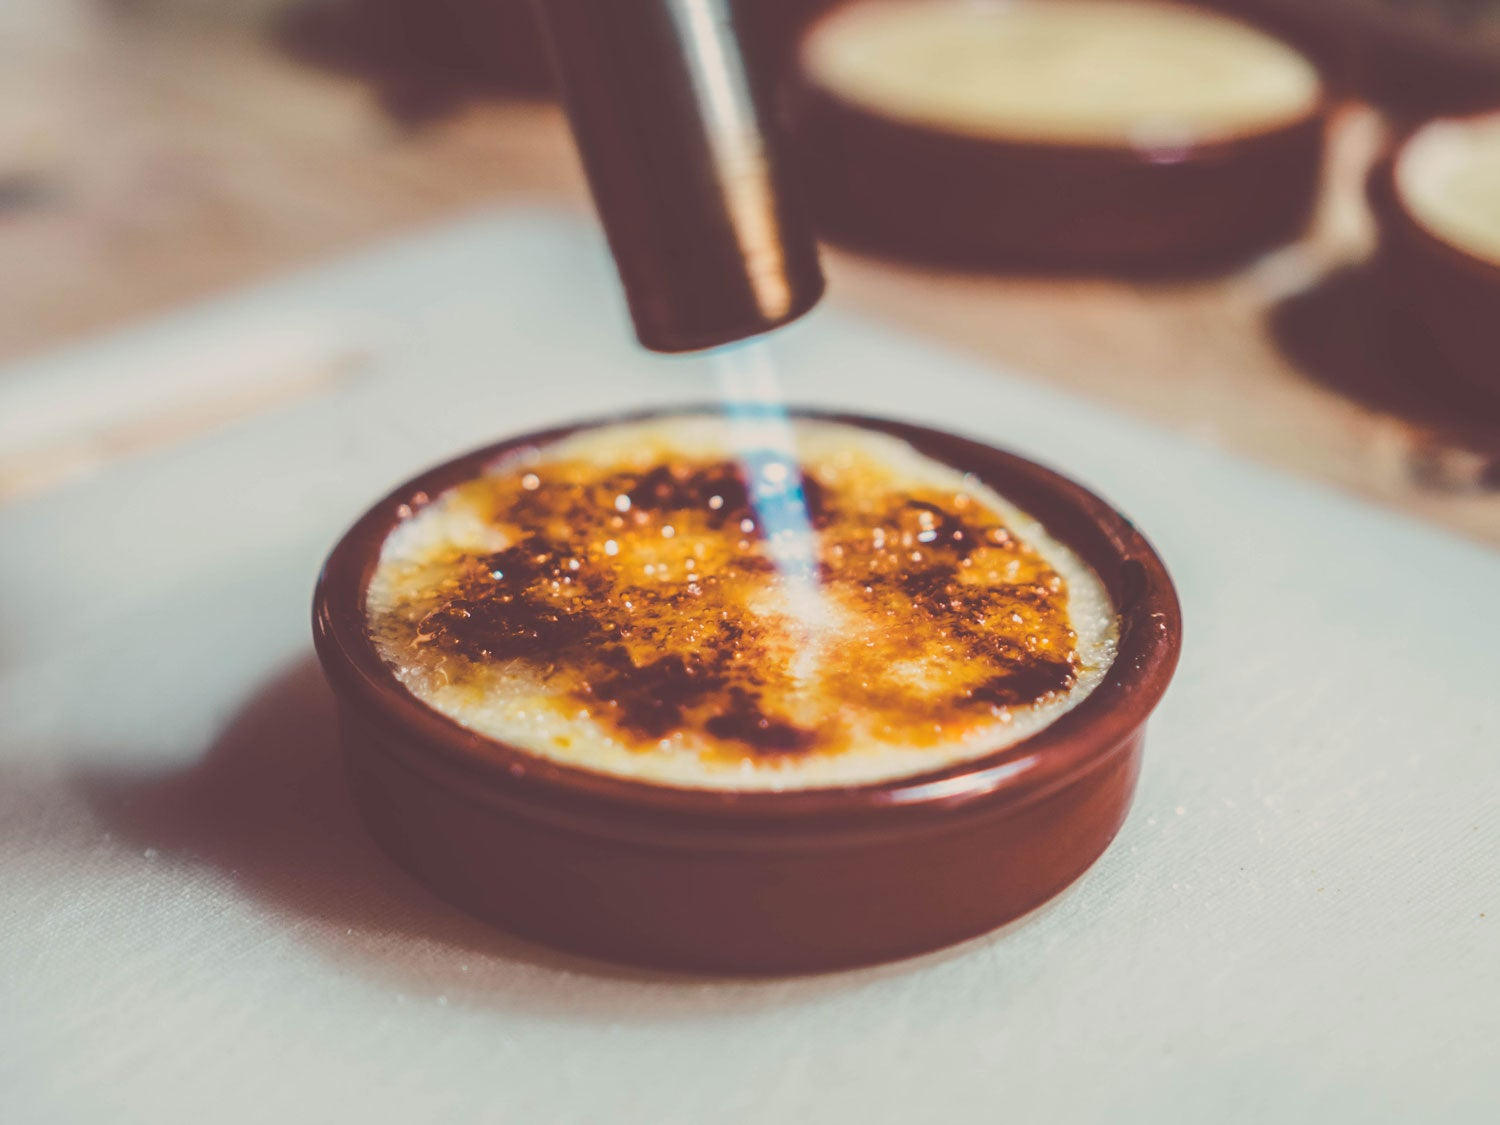 Using blow torch on creme brulee